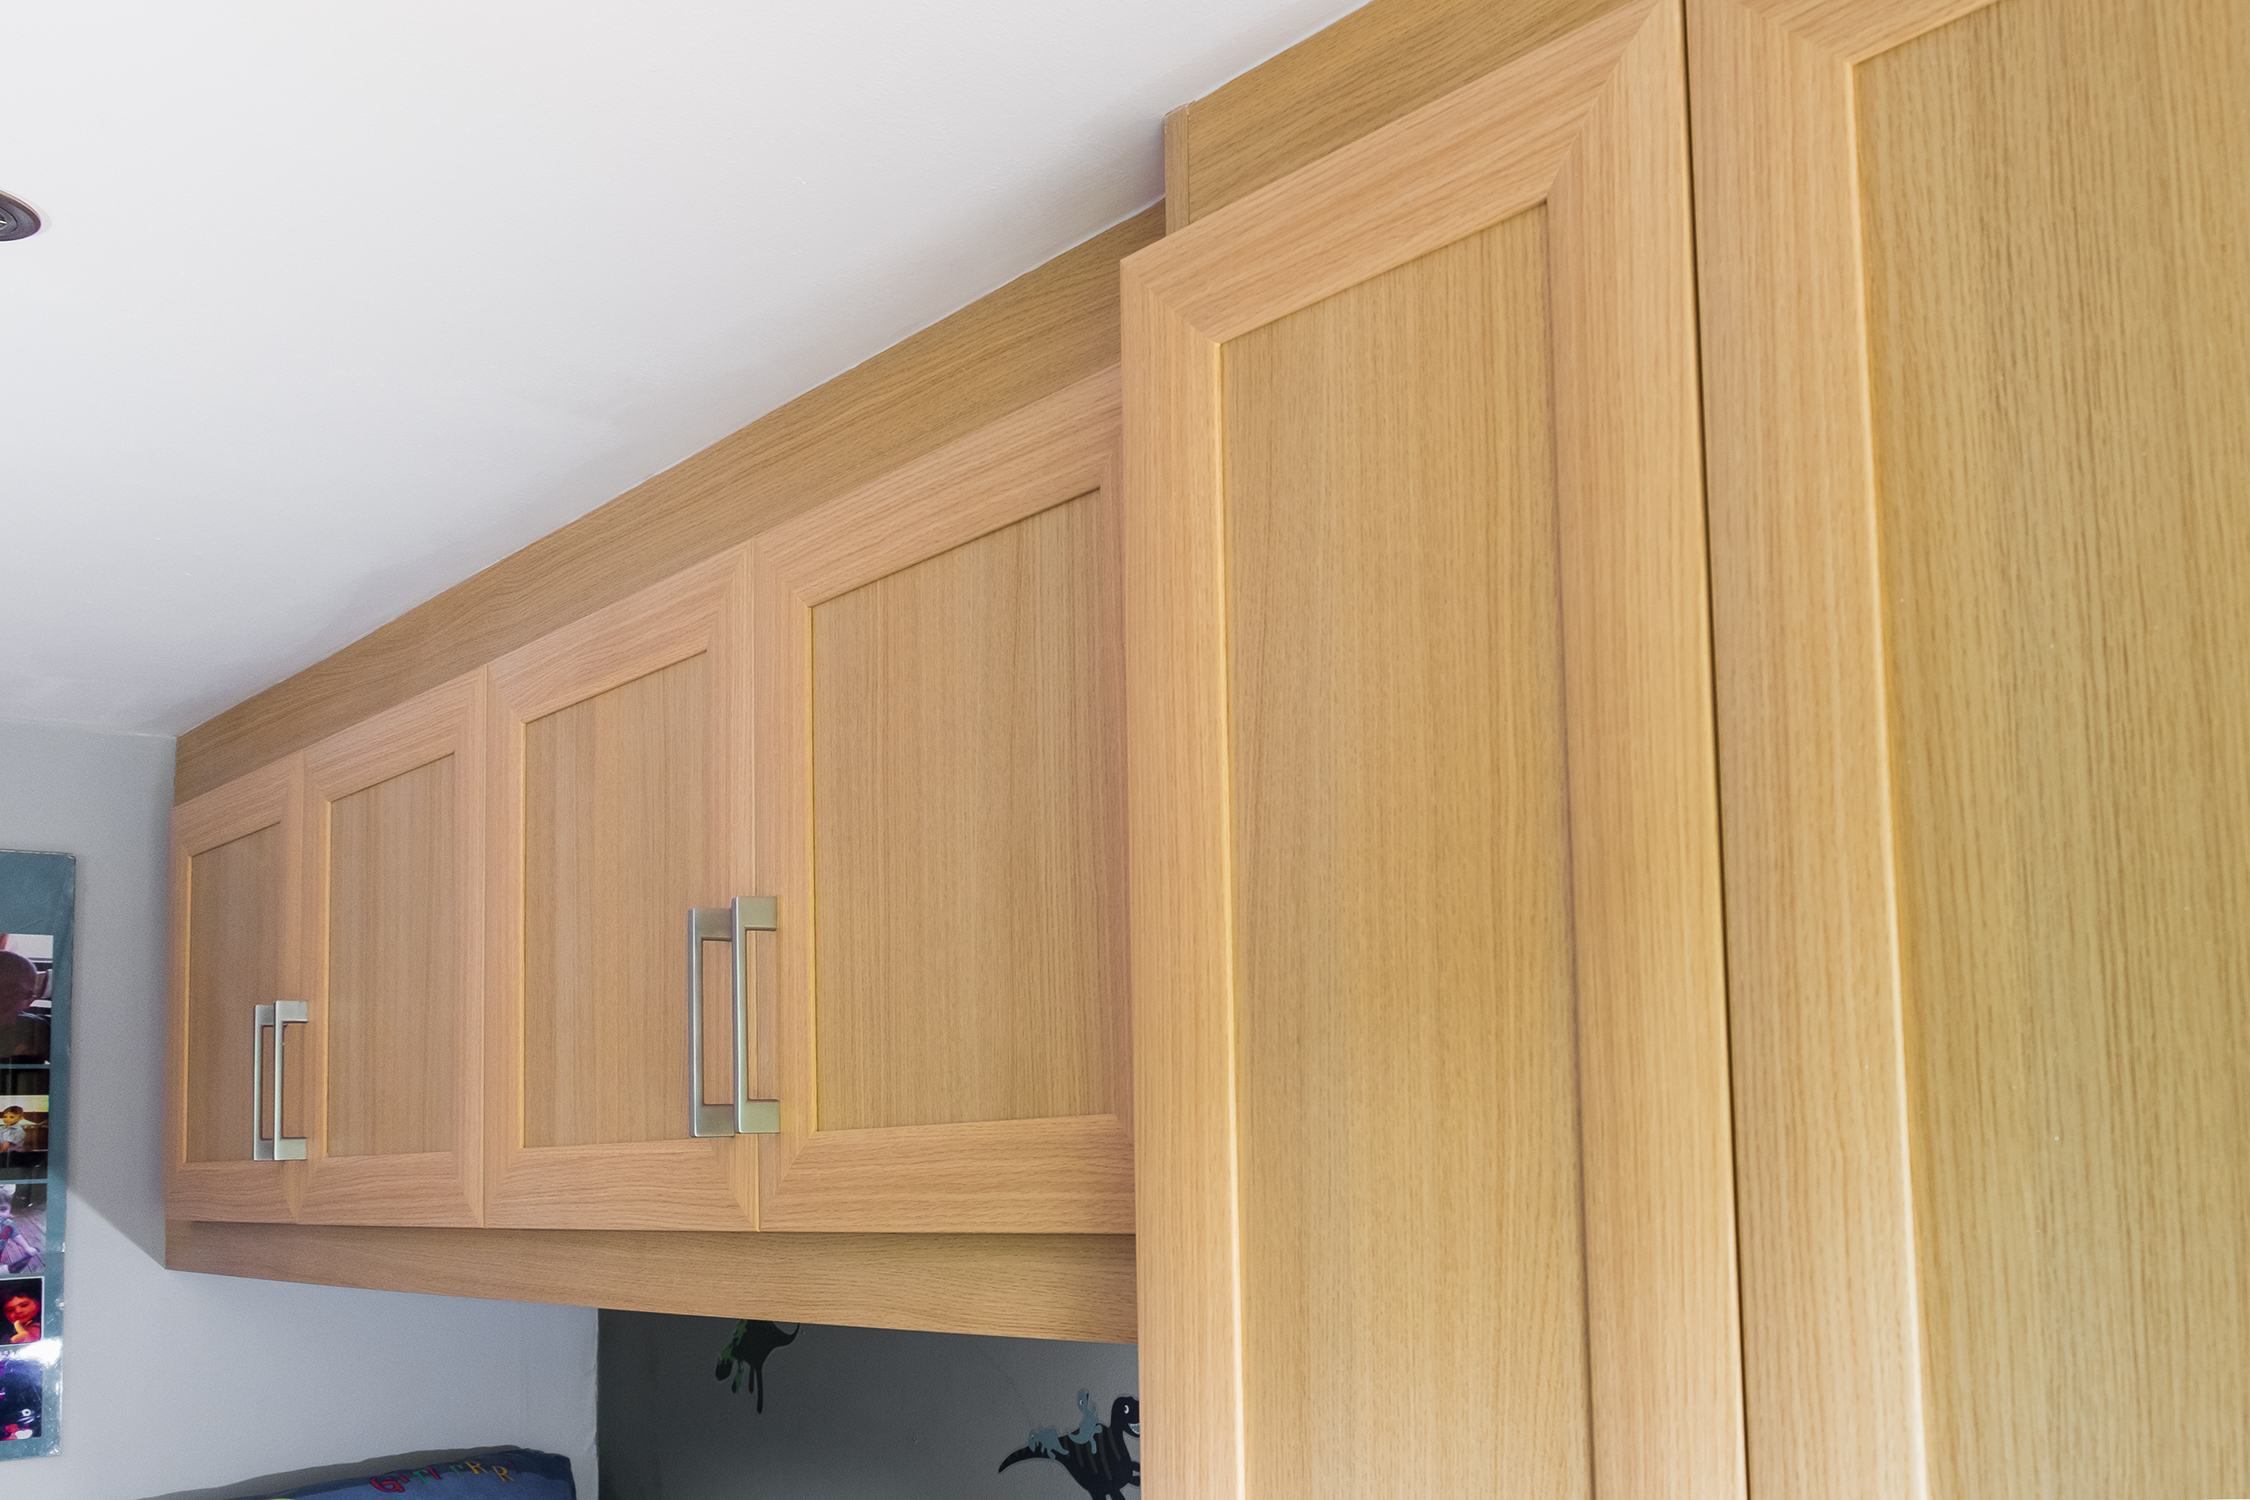 Cabin Bedroom Fitted Furniture: The Benefits Of Cabin Beds